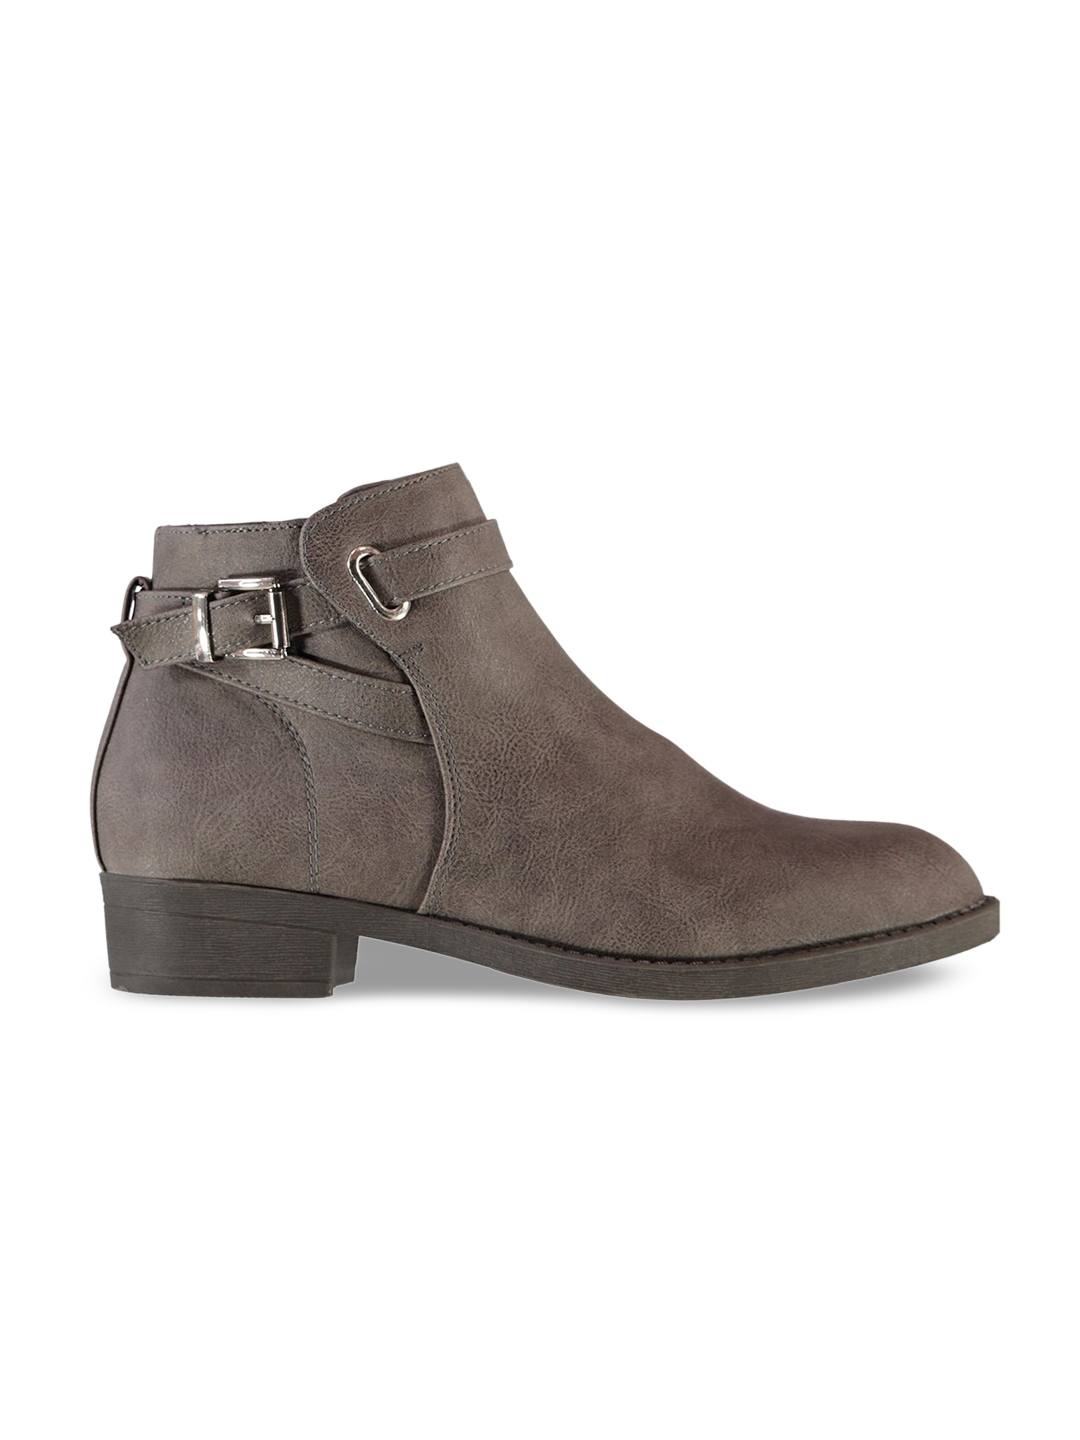 0c746dfc9fa9 Buy Miso Women Taupe Solid Synthetic Mid Top Flat Boots - Casual ...